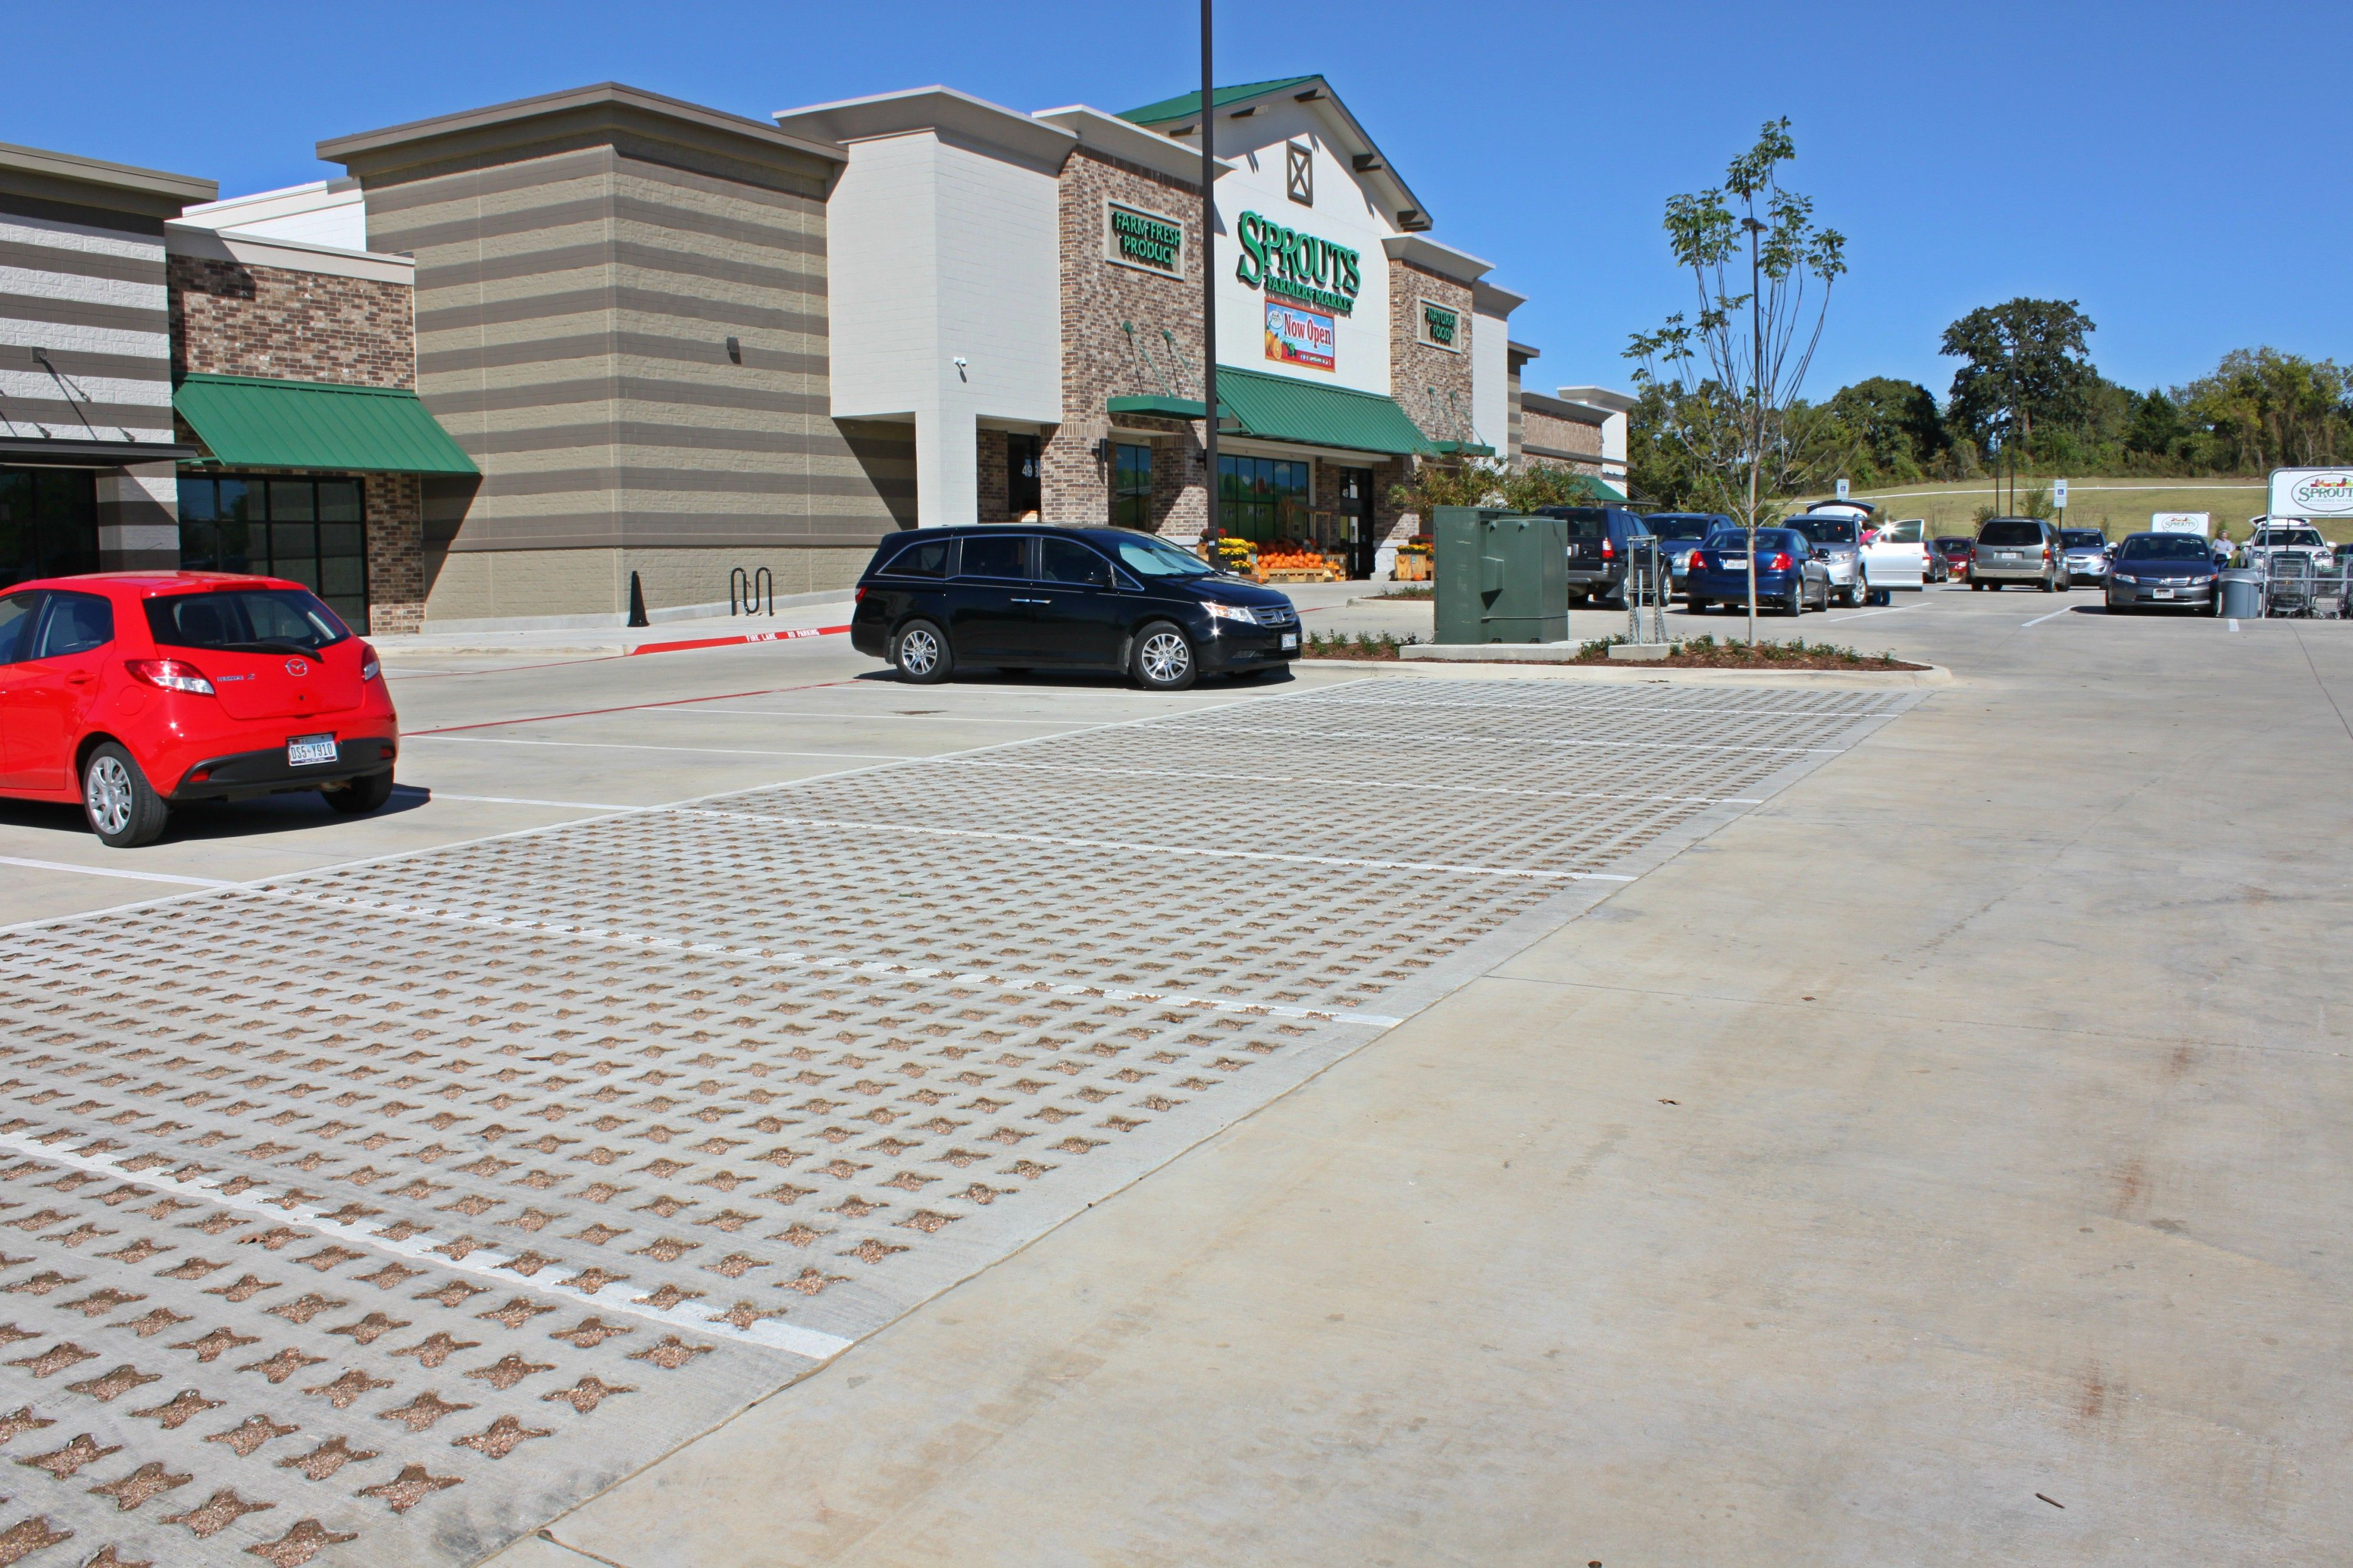 Sprouts Farmers Market Store in Denton Texas Installed a Grasscrete Stone Filled pervious concrete parking lot for low maintenance and to control storm water